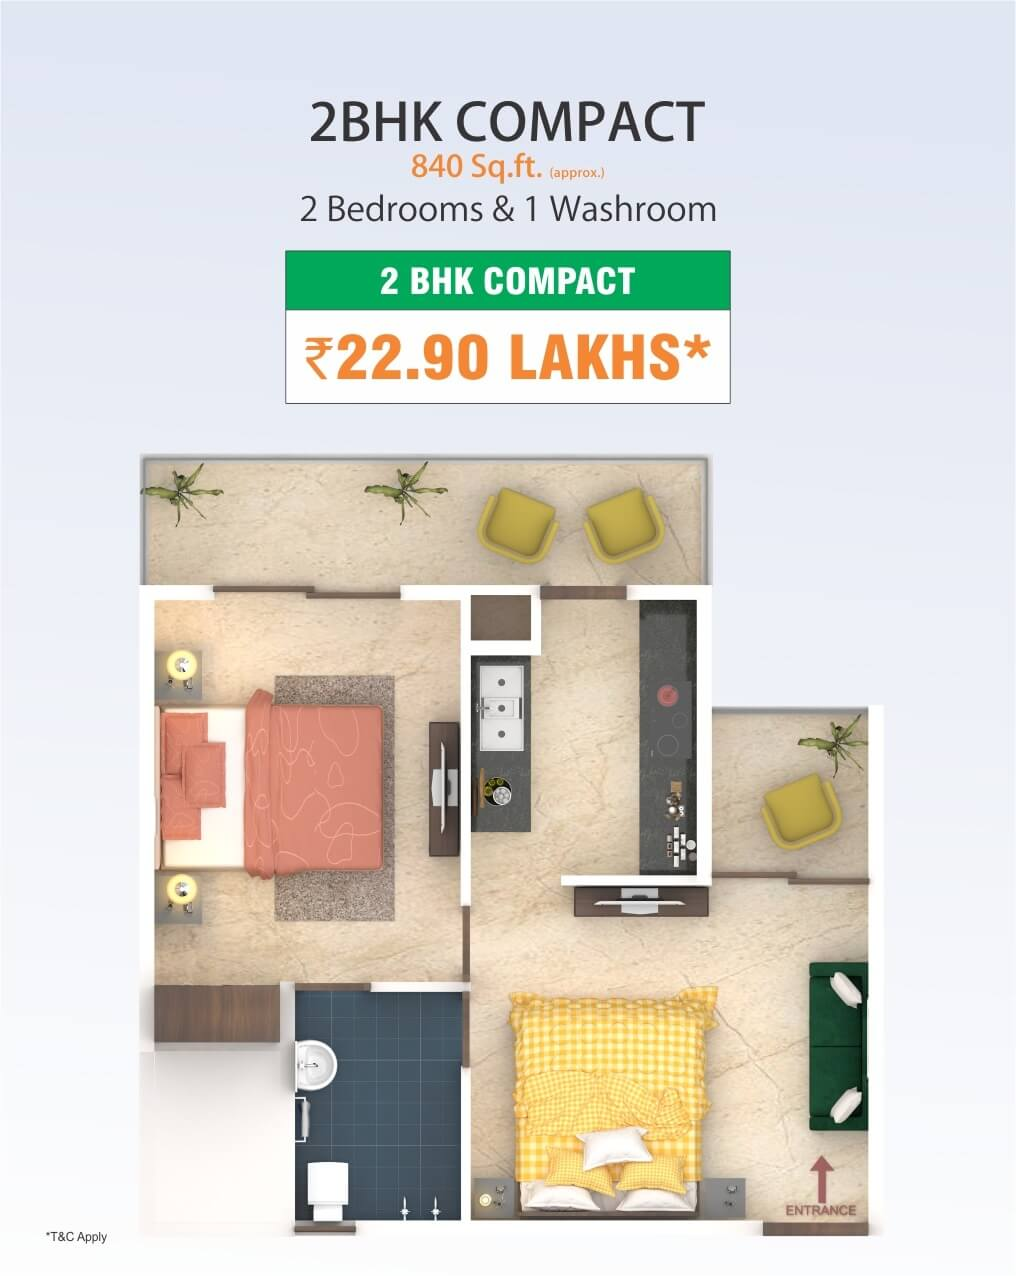 2 BHK Compact Flats in Mohali @22.90 Lakhs - 840 Sq.Ft.